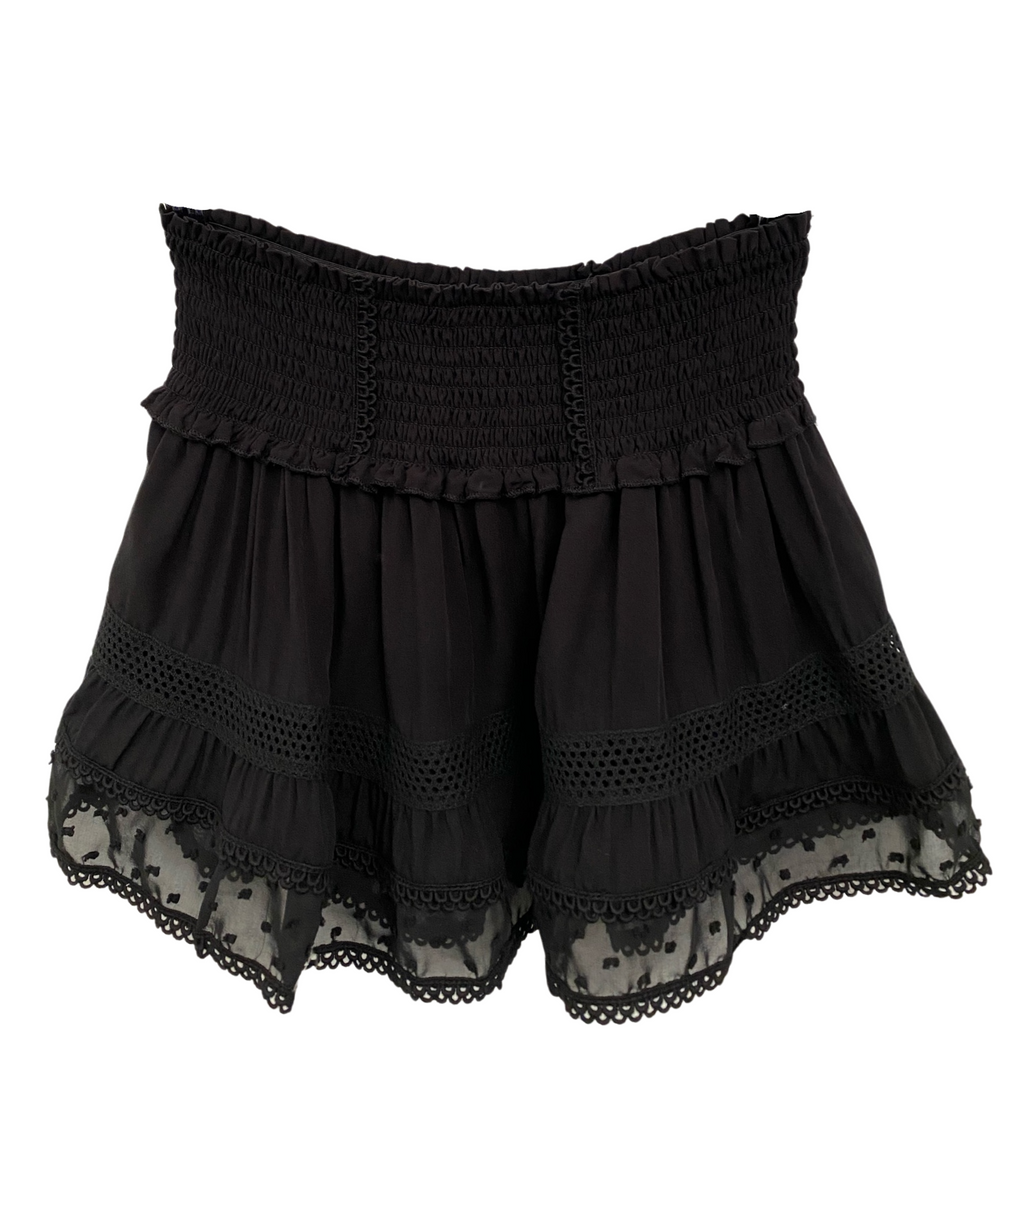 Katie J NYC Girls Lara Black Skirt